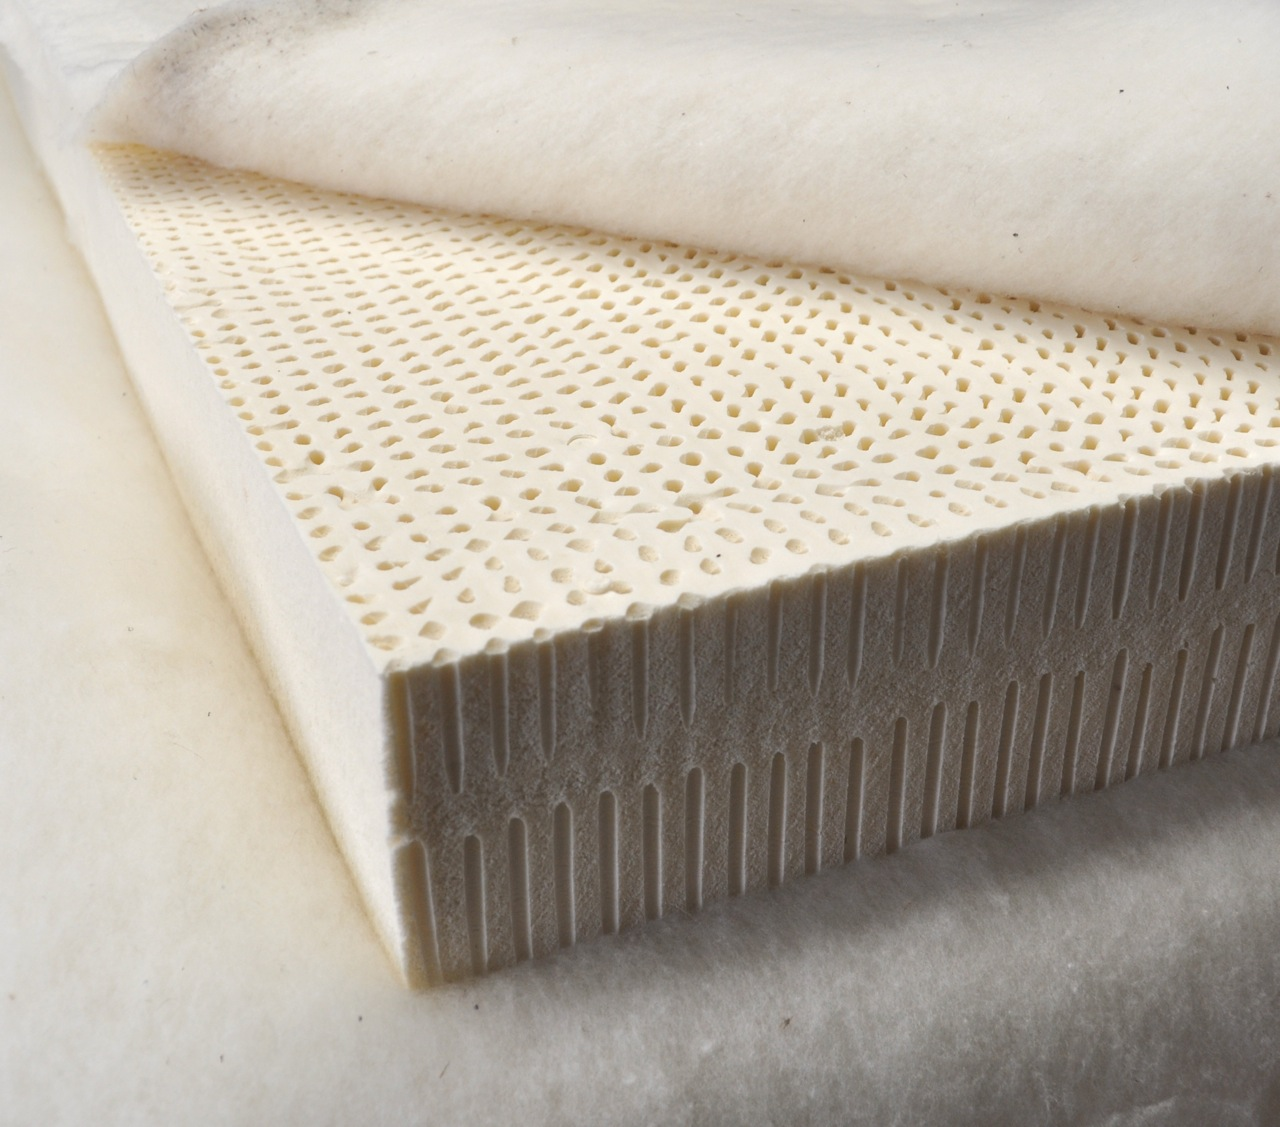 Rubber Mattress Advantages Of Sleeping On Latex Mattress Decor